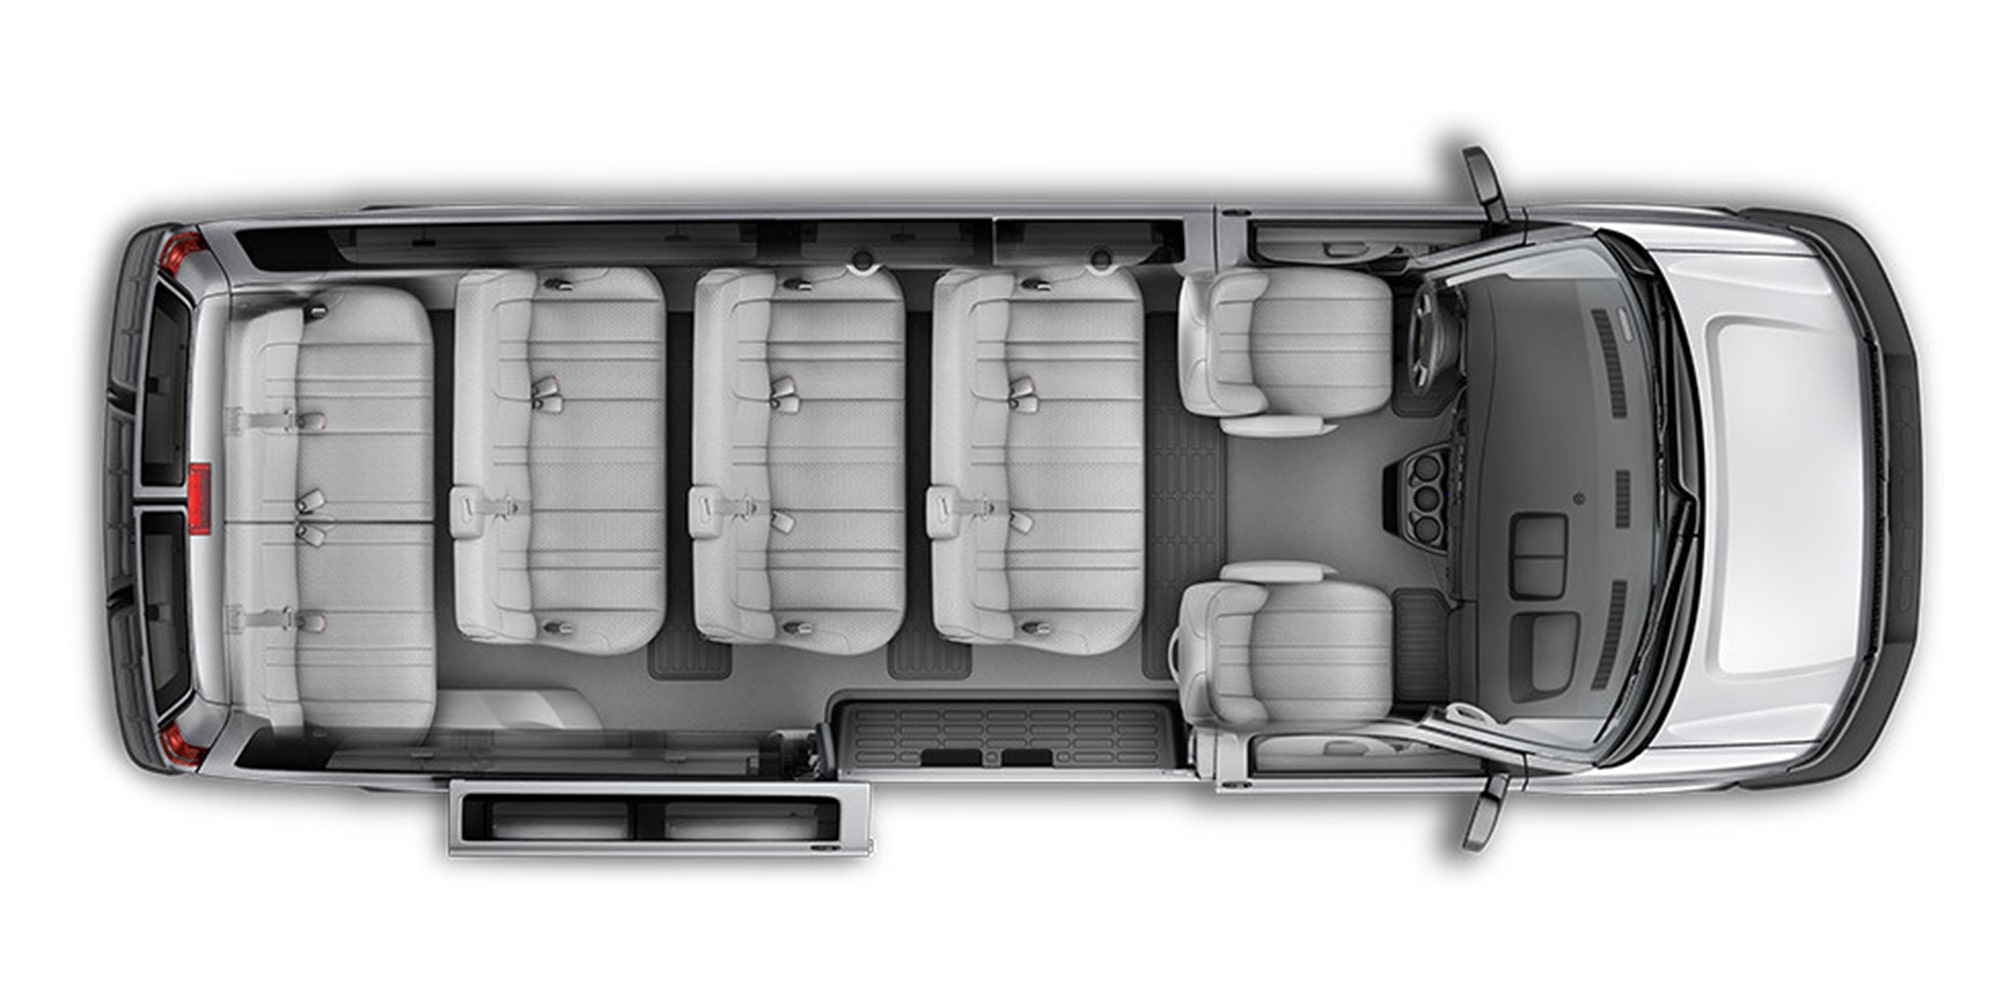 Overhead Interior Seating View Of The 2018 Express Passenger Van